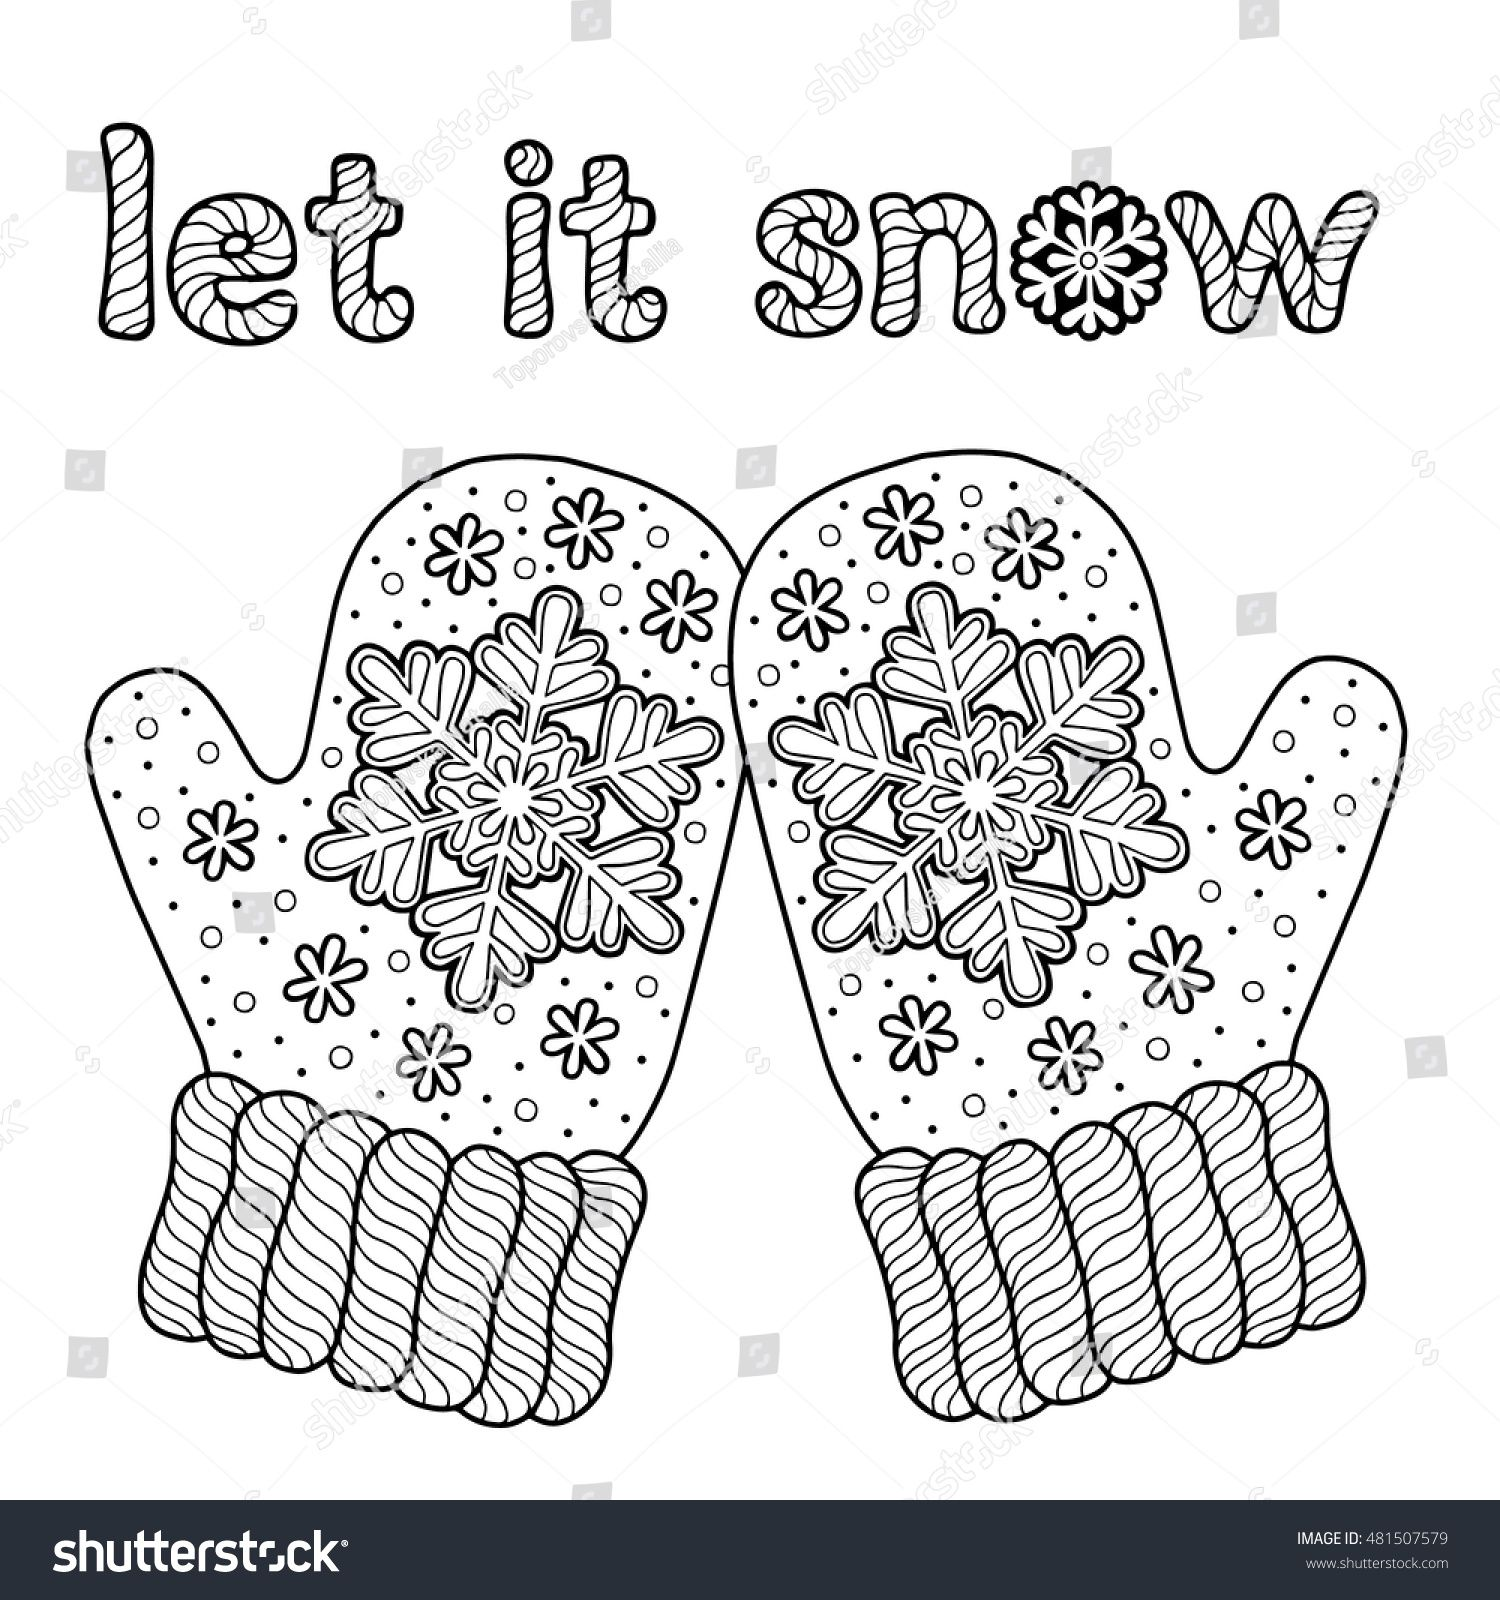 Let It Snow Coloring Page For Adults Hand Drawn Warm Knitted